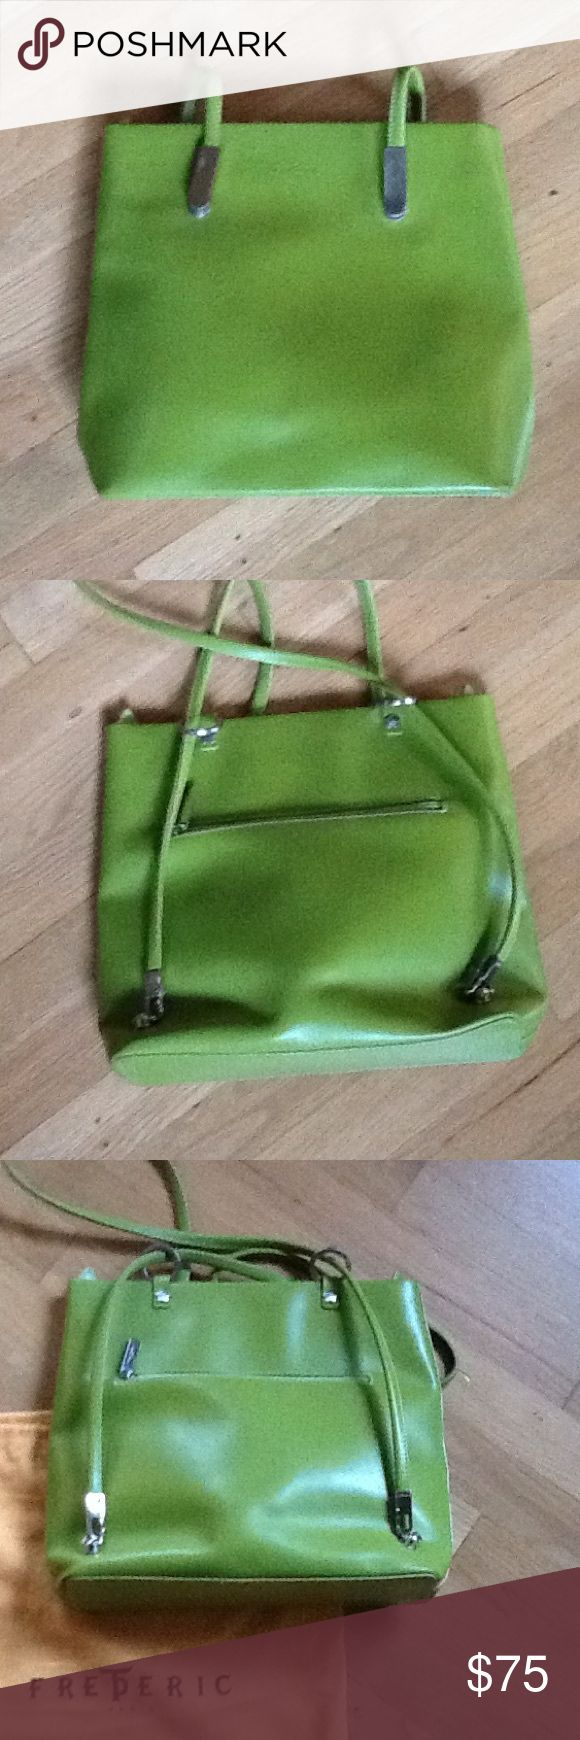 "Frederic Paris Handbag Frederic Paris Leather Handbag. Looks new. May have been used a few times. Approx 12"" wide 10"" tall and 3.5"" across the bottom. 7.5"" outside and inside zippered pouches. Lime green. frederic paris Bags"